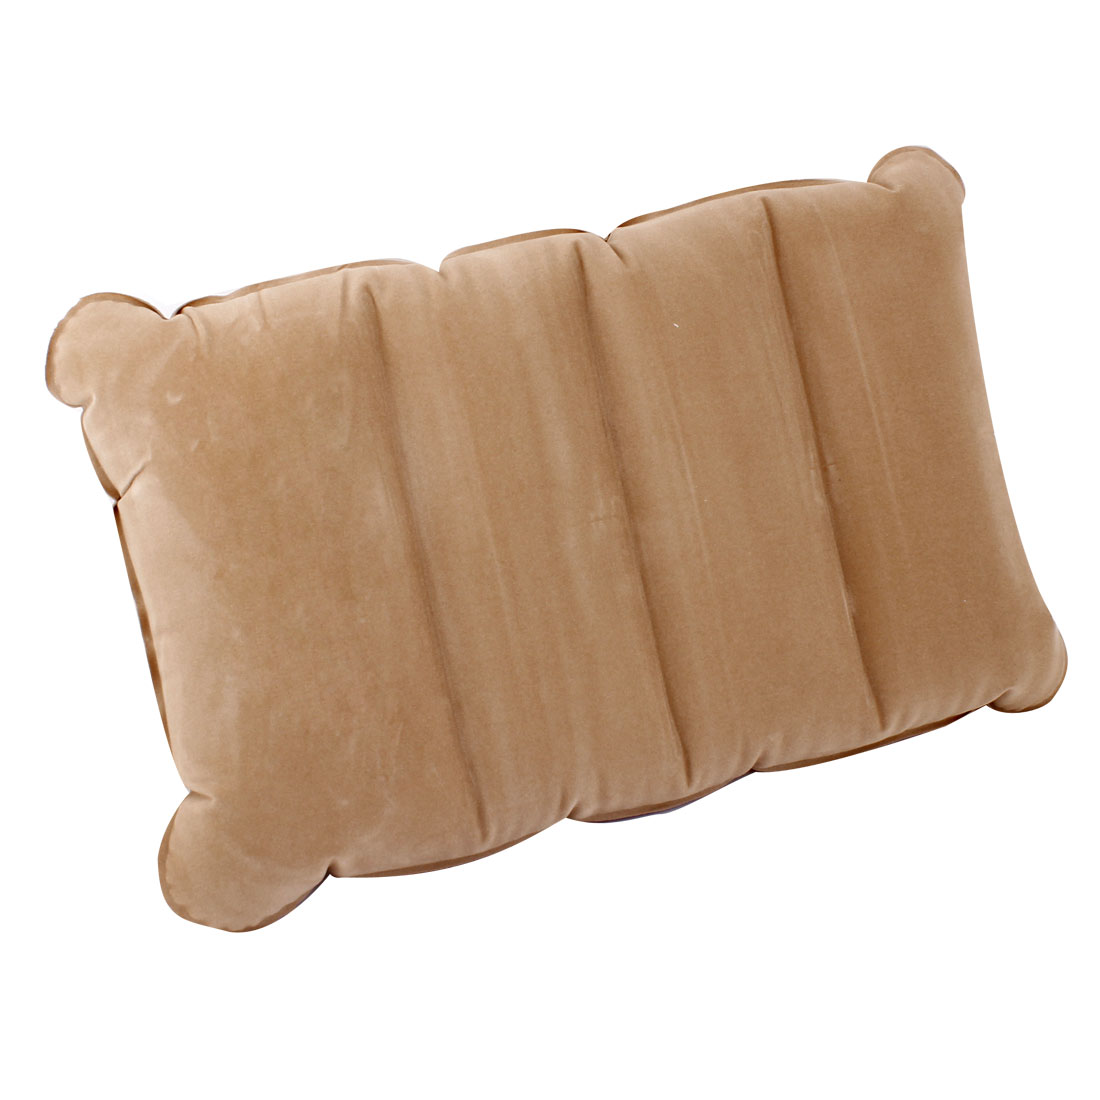 Beige Flannel Inflatable Waist Massage Cushion Cushion Pad Mat